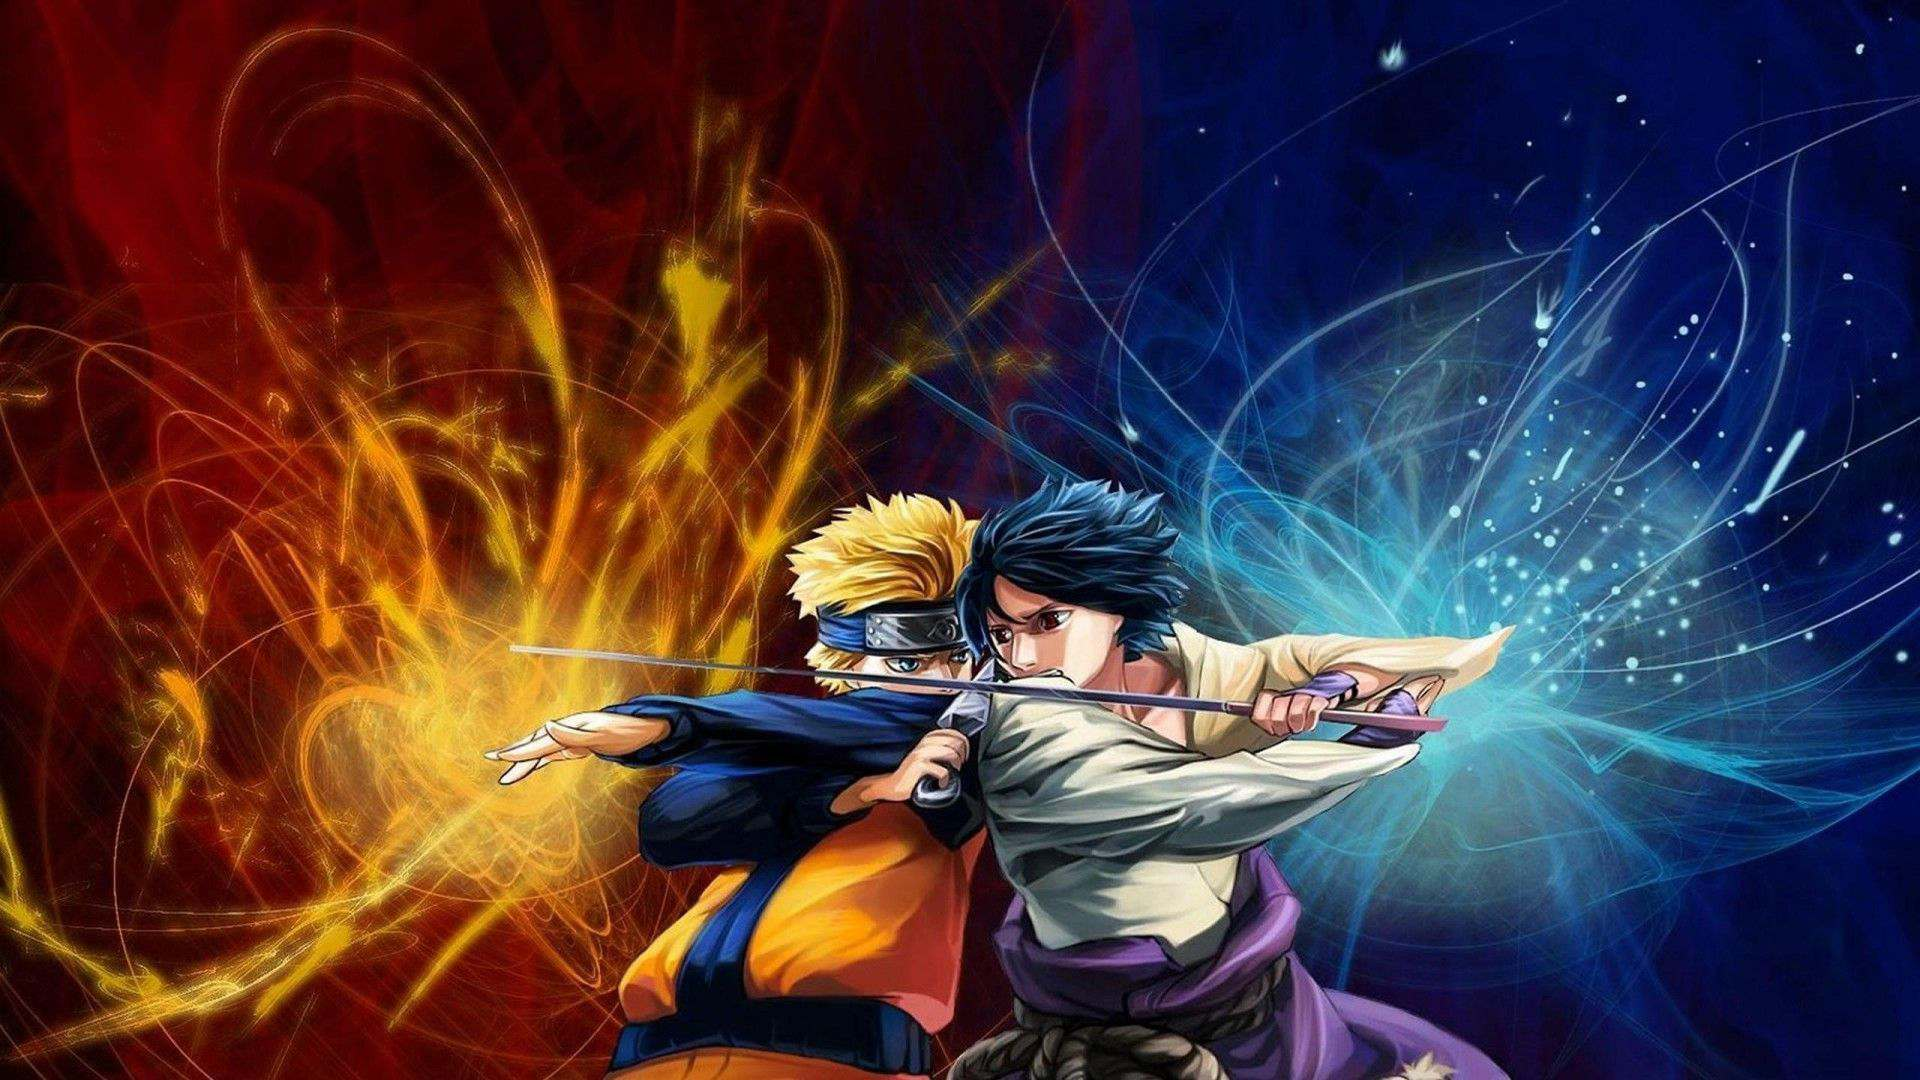 Naruto HD Wallpapers  Backgrounds  Wallpaper  1920x1080